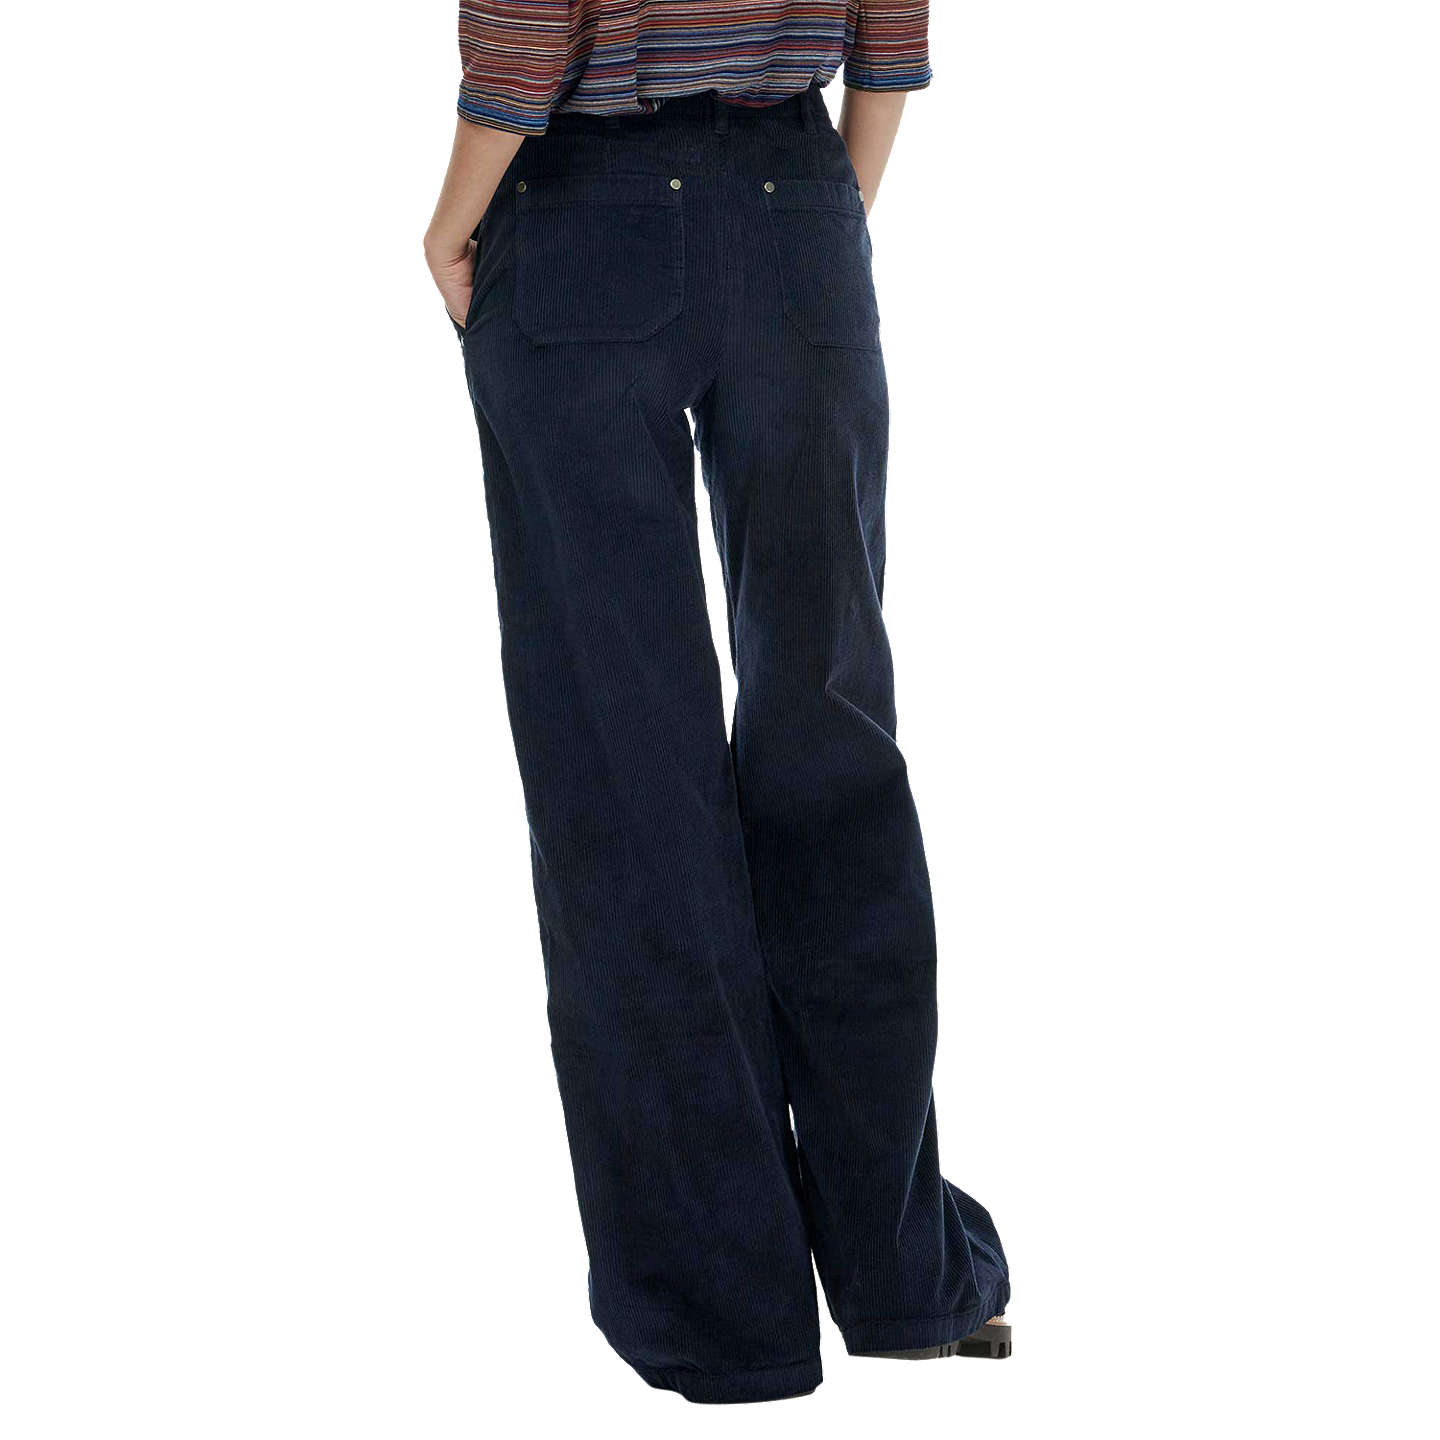 BuyBrora Jumbo Cord Wide Leg Trousers, Navy, 6 Online at johnlewis.com